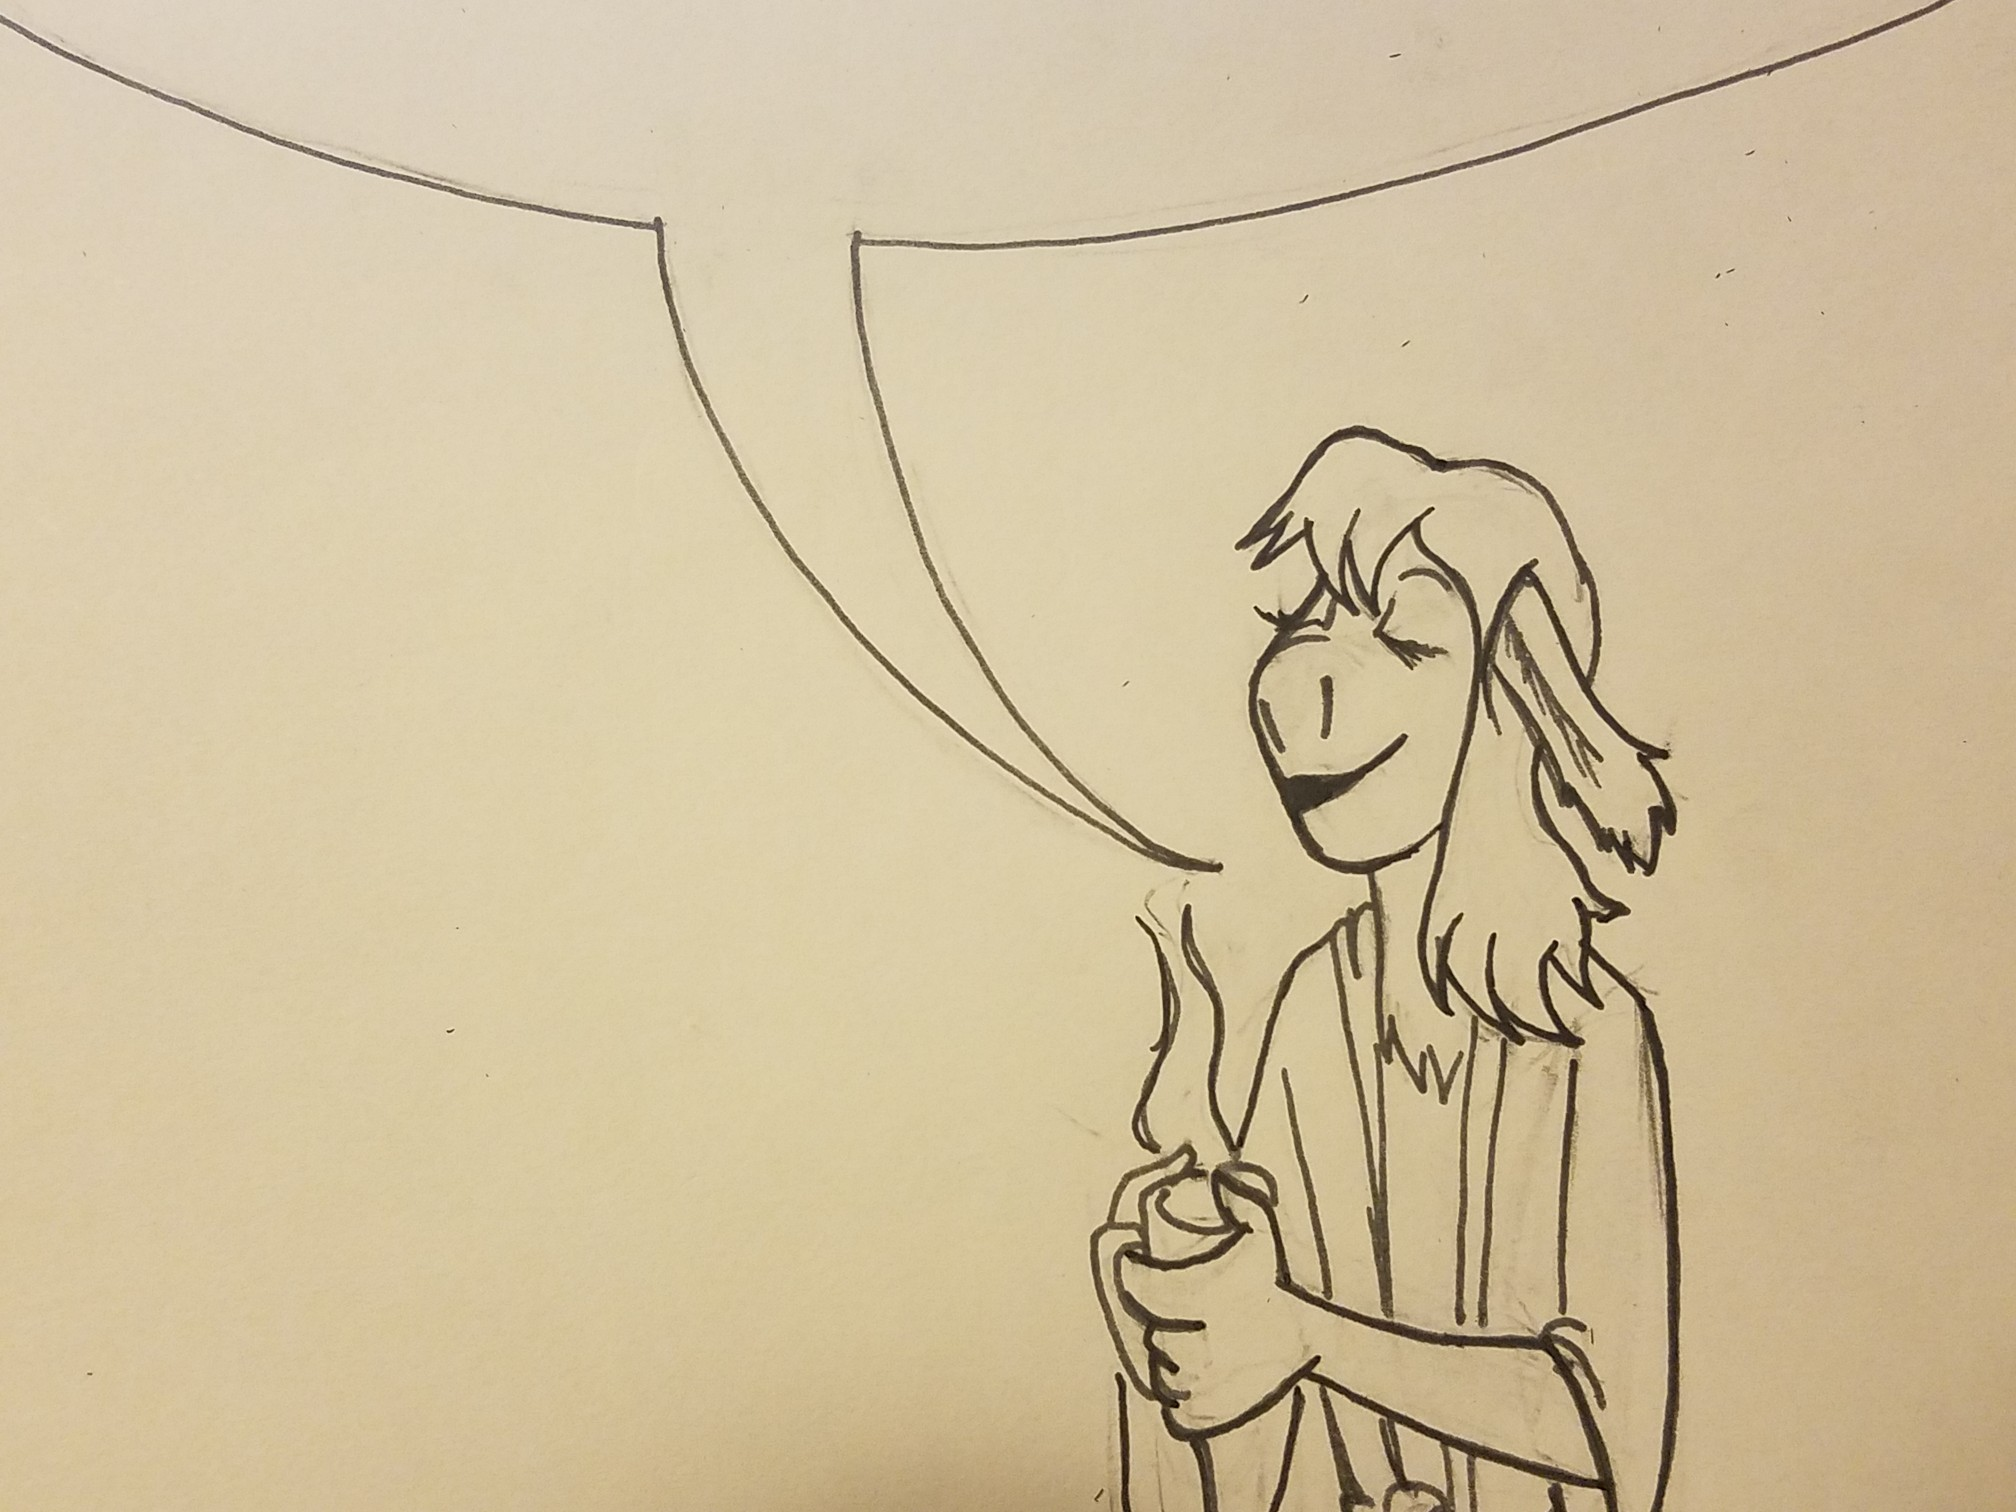 Line drawing of Caduceus Clay in a simple robe holding a mug of tea with an open word bubble suggestively encompassing the text above.